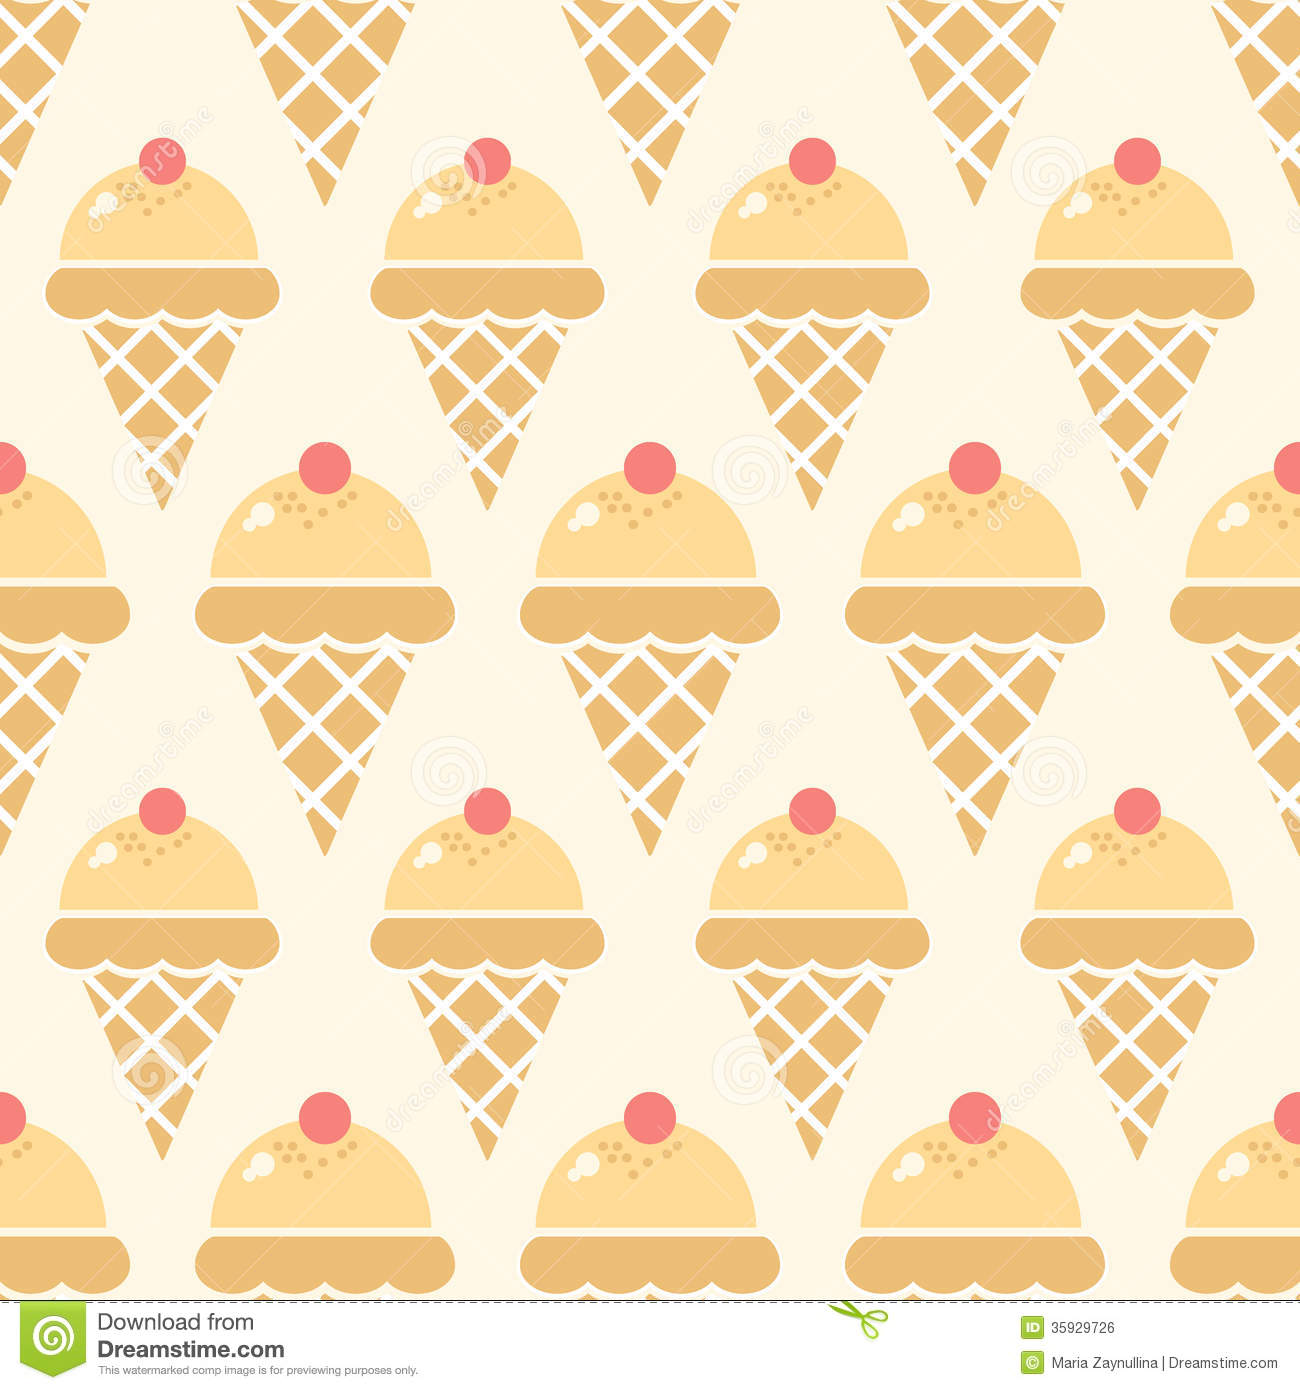 Seamless Ice Cream Wallpaper Royalty Free Stock Images: Ice Cream Background Stock Vector. Illustration Of Product